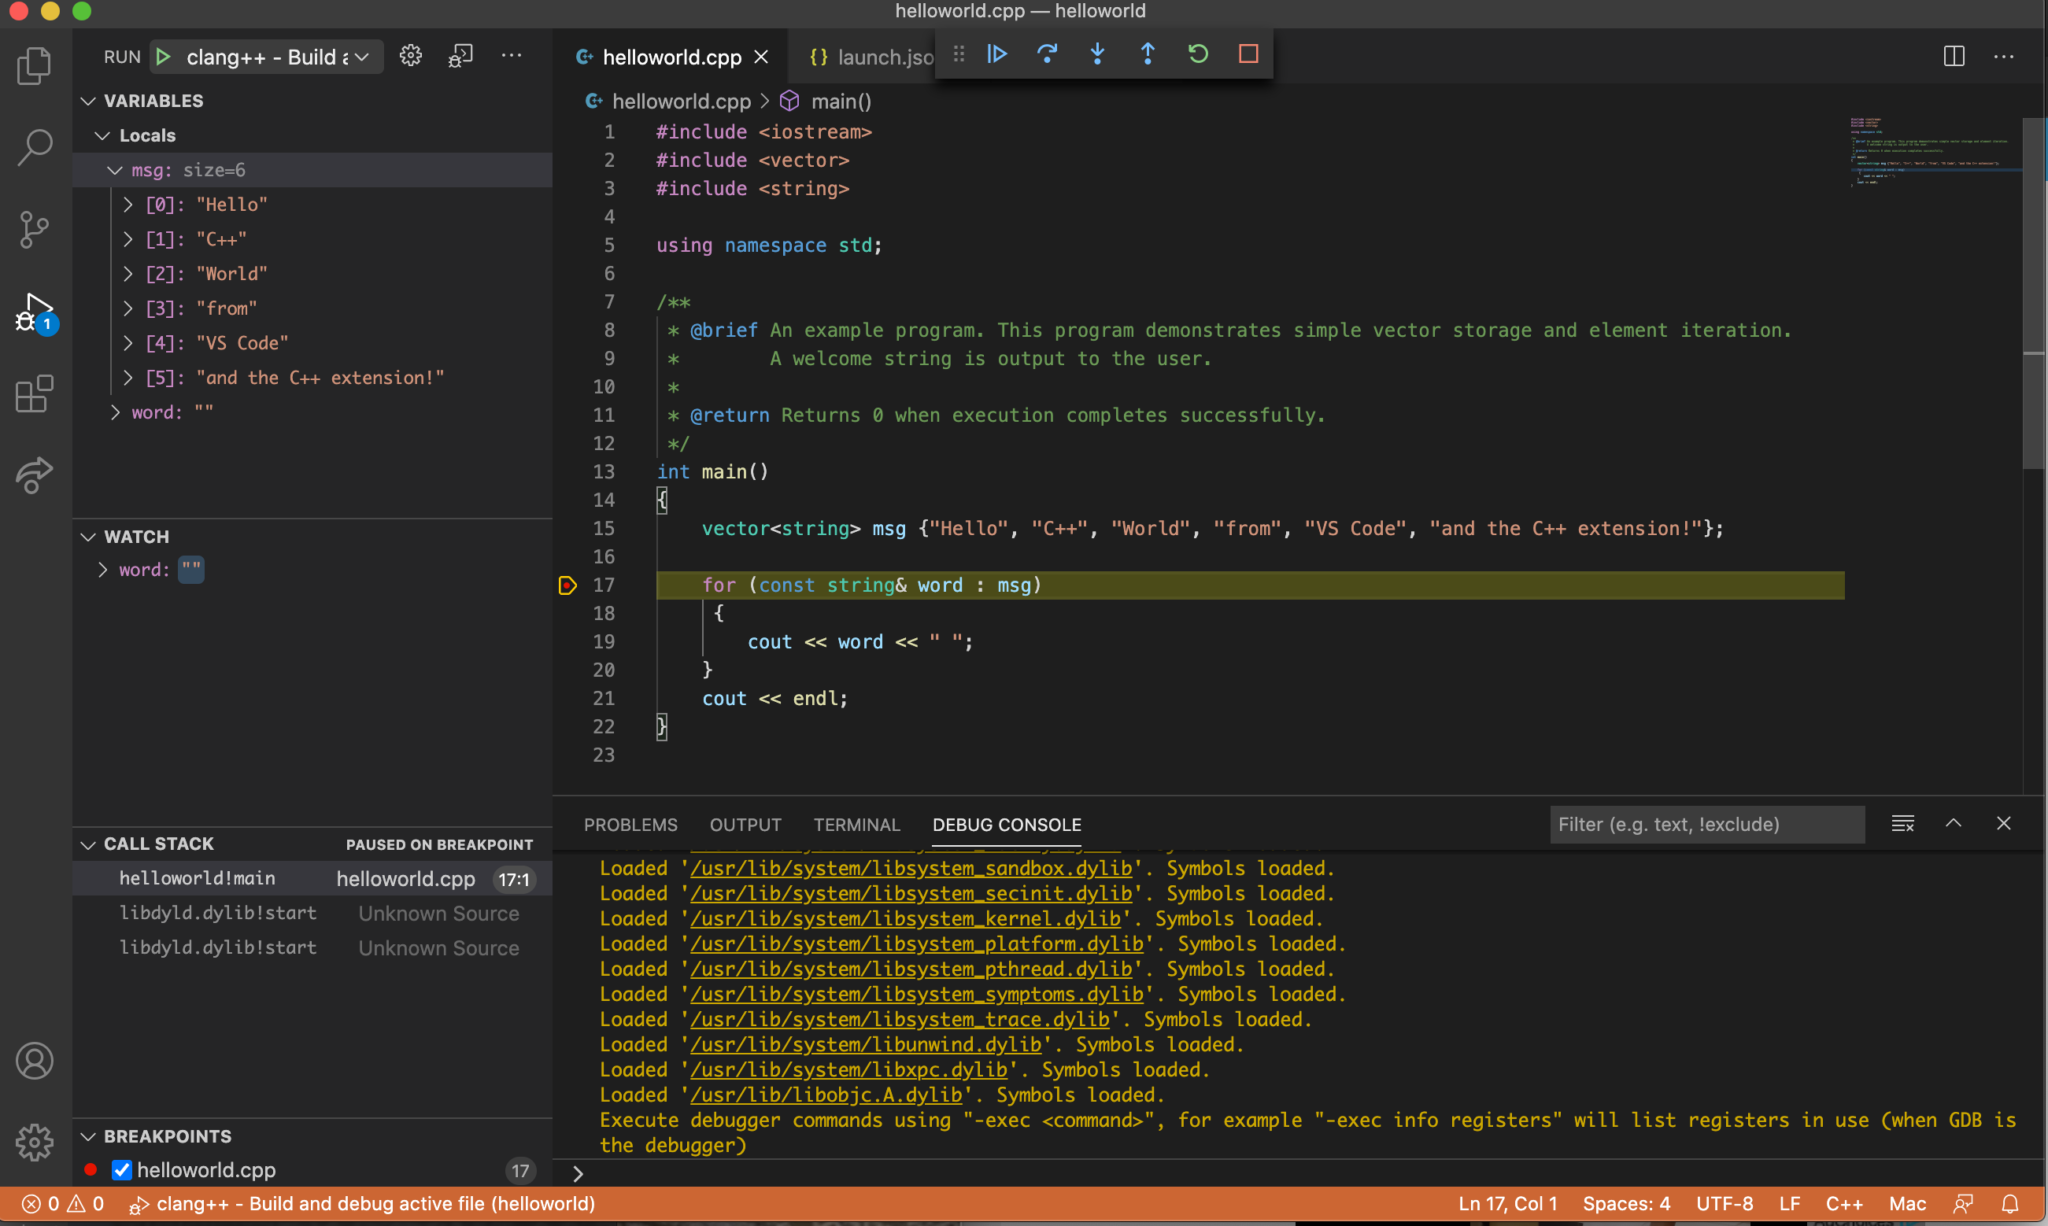 Screenshot showing C++ debug session in VS Code